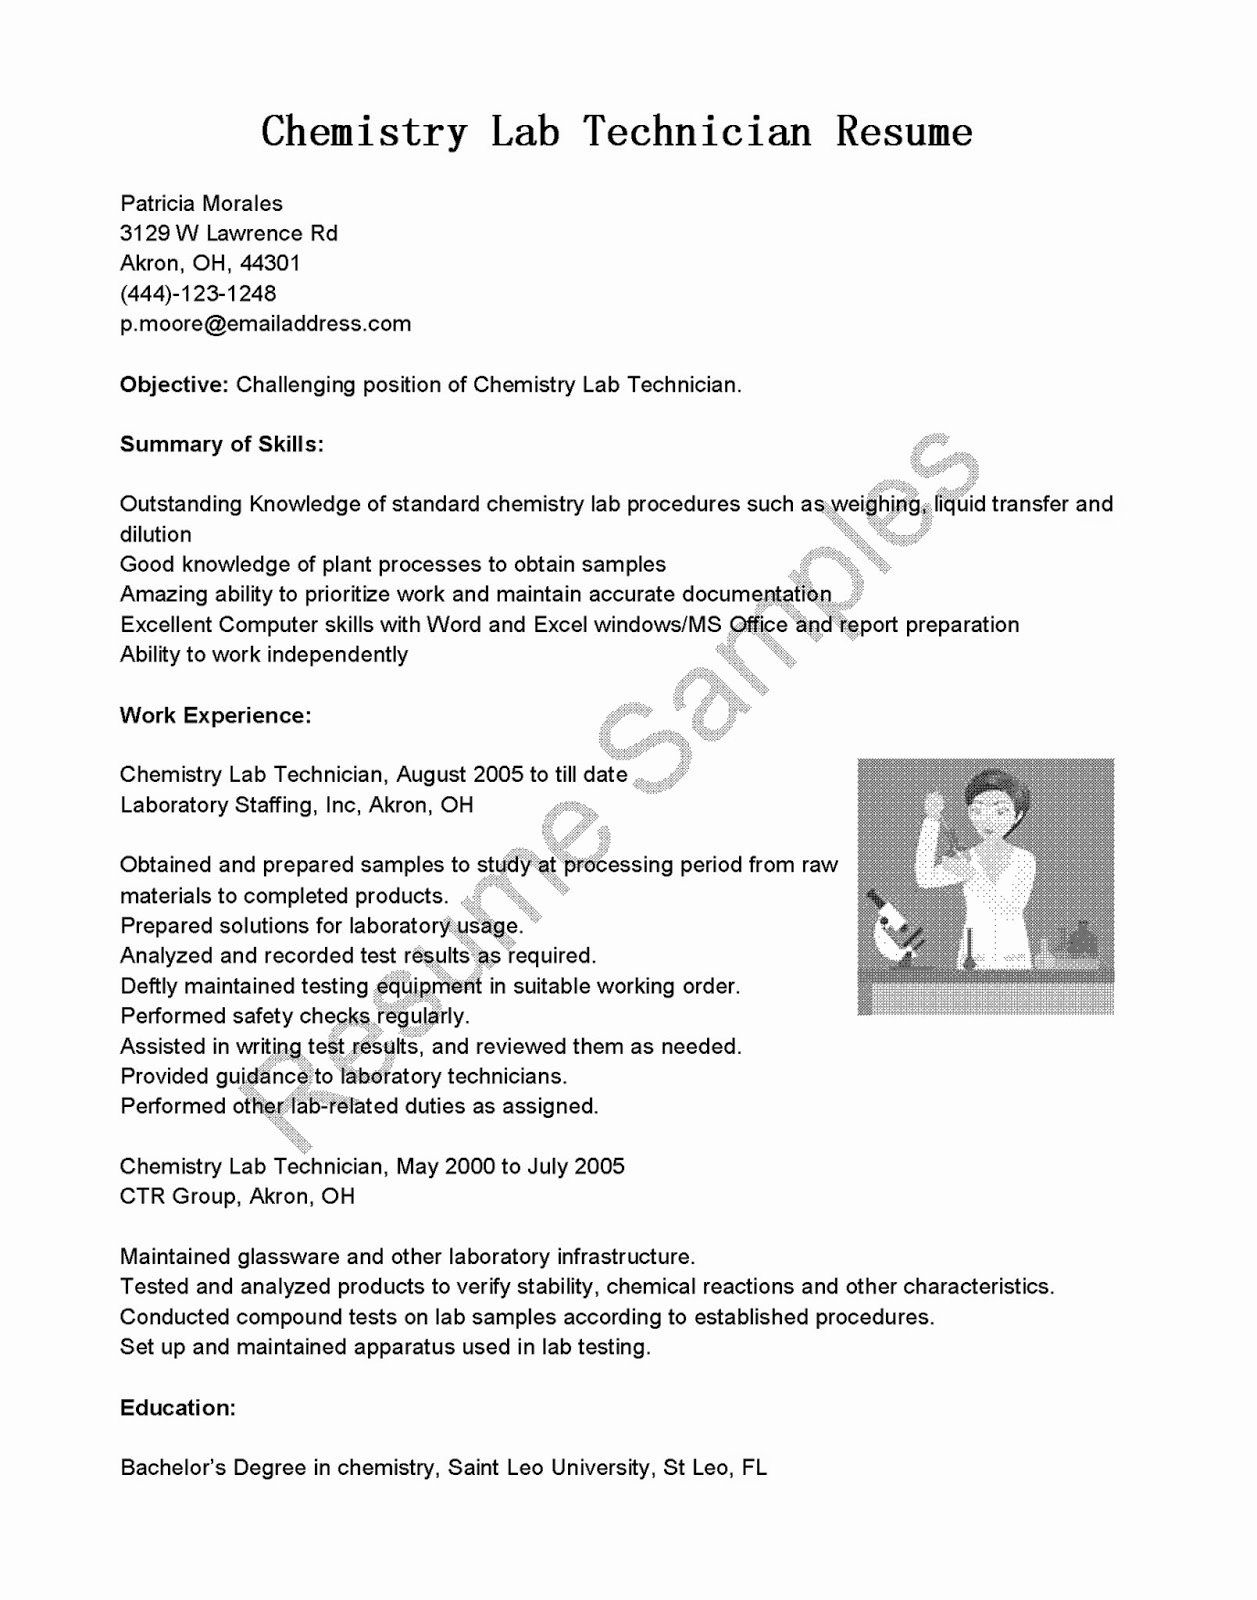 Lab Technician Cover Letter Best Of Cover Letter Chemical Lab Technician Longislandyoga Resume Objective Examples Chemistry Labs Good Resume Examples